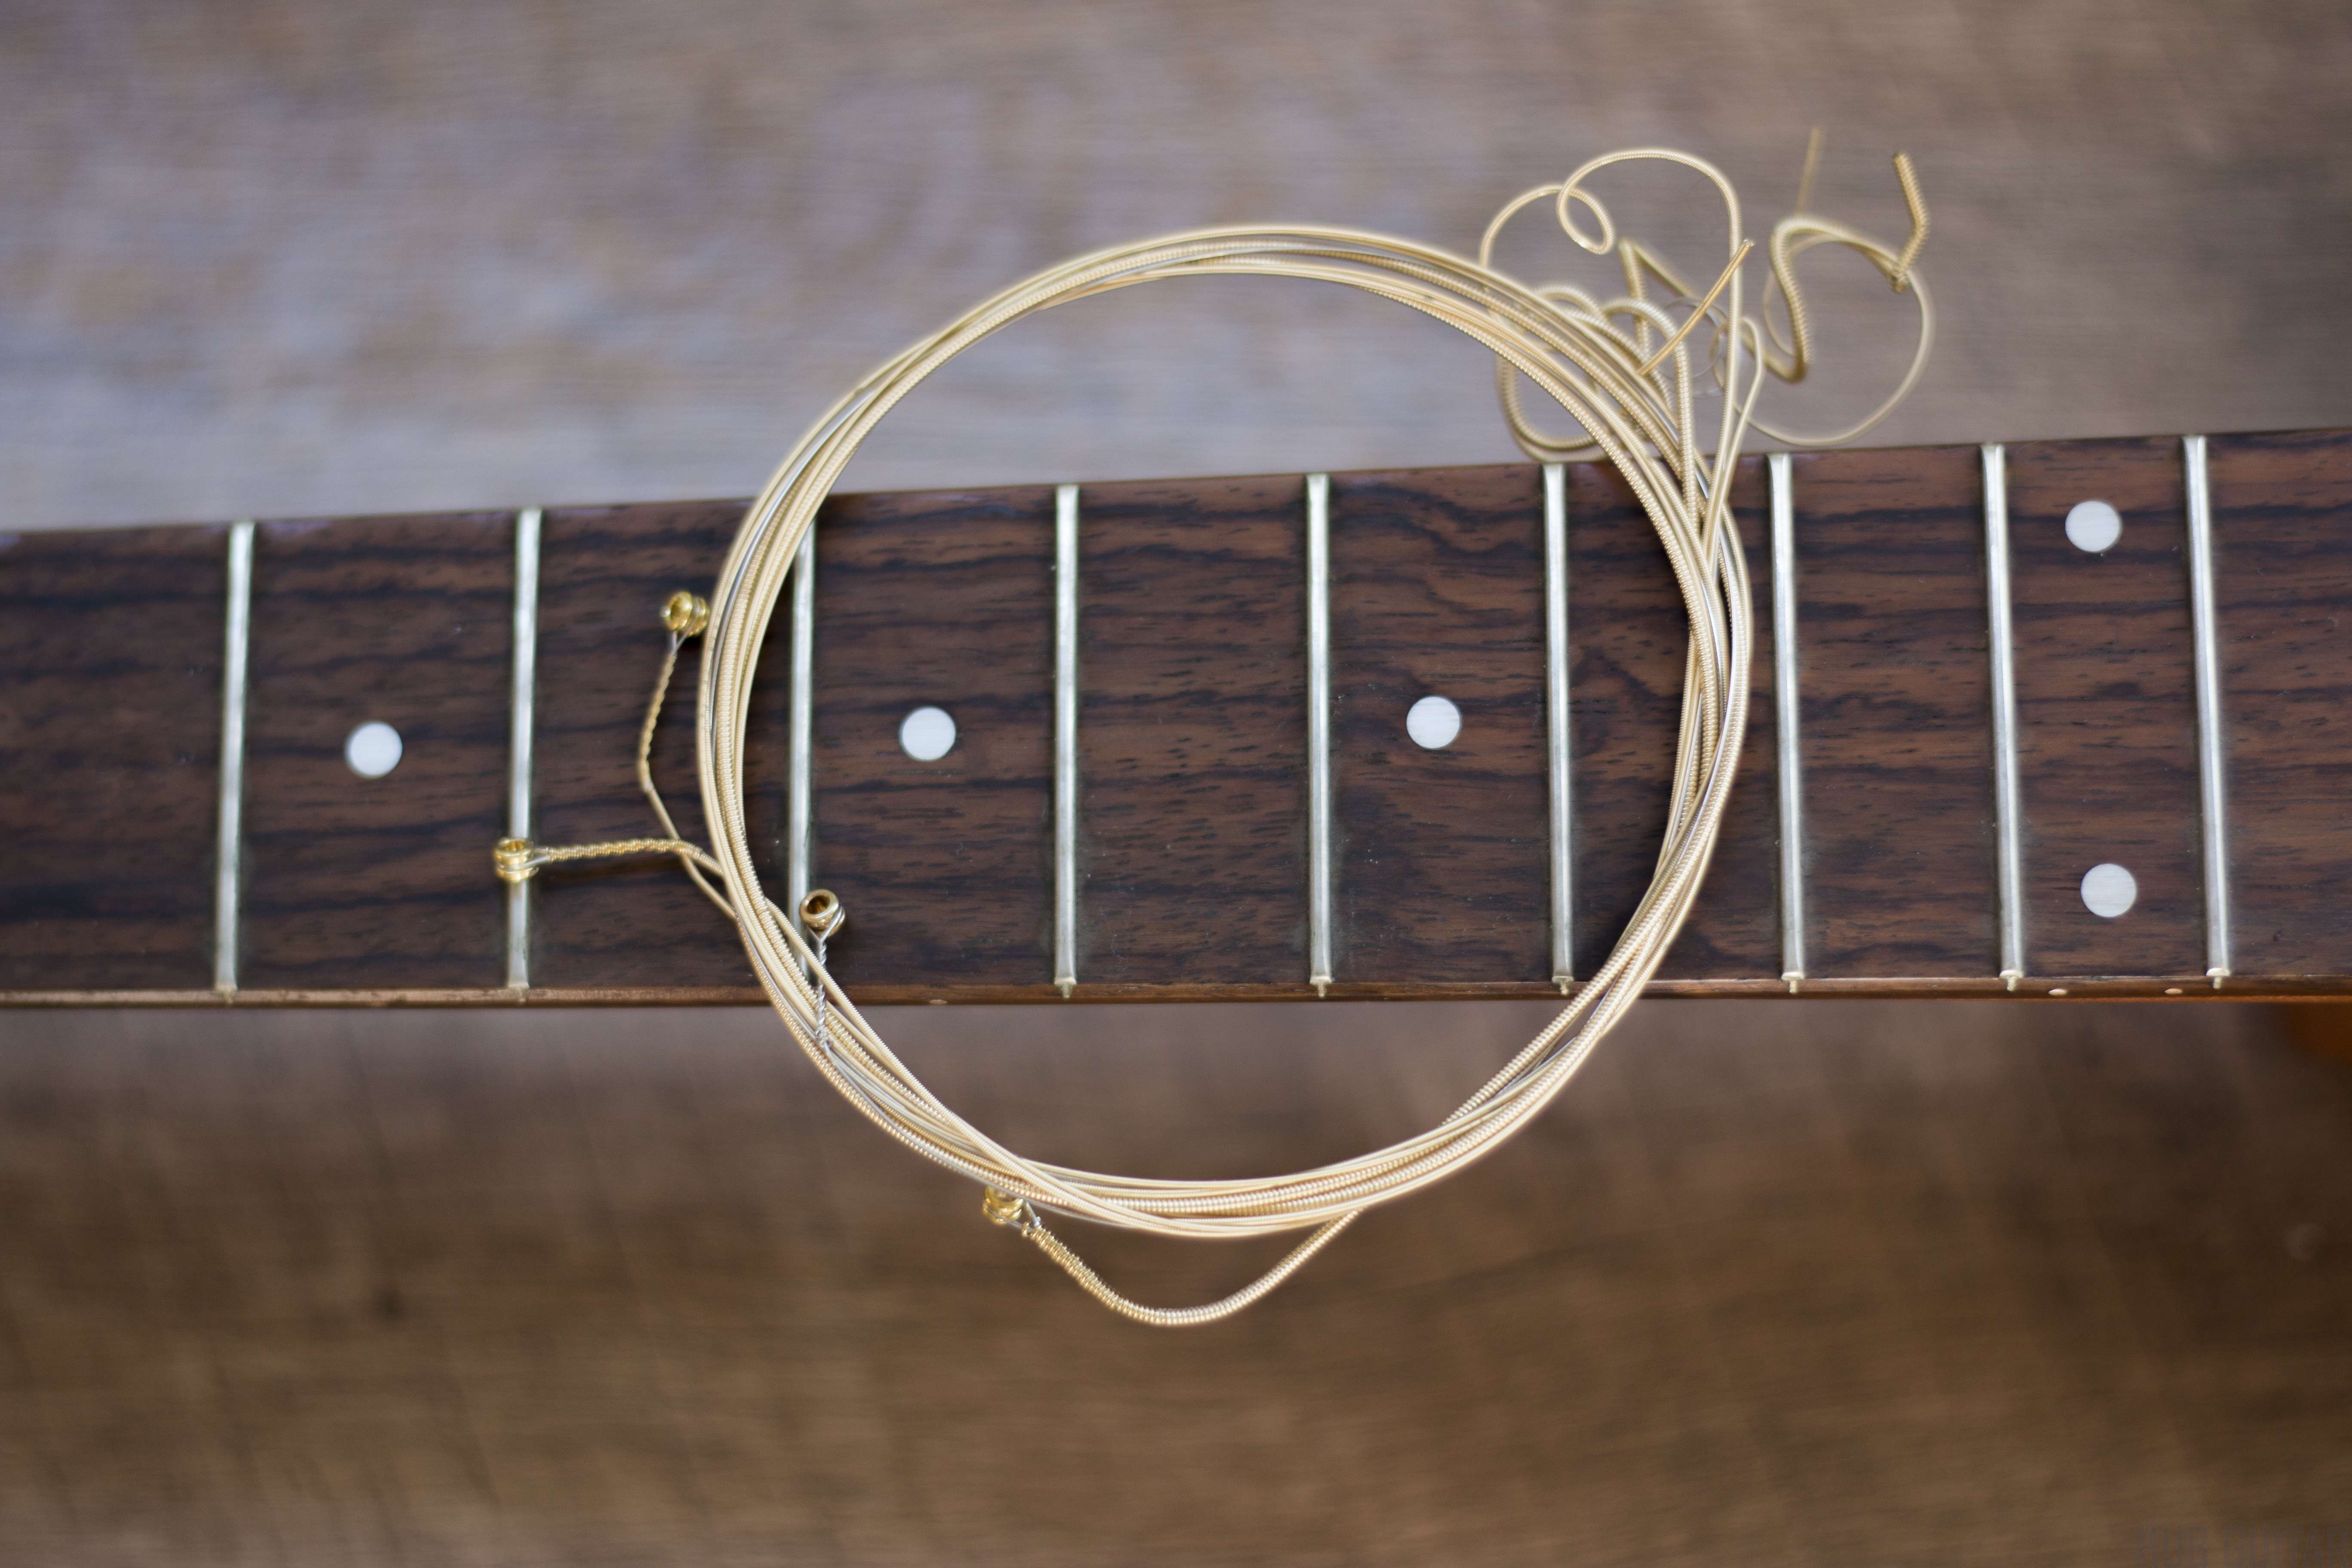 How To Change Your Guitar Strings